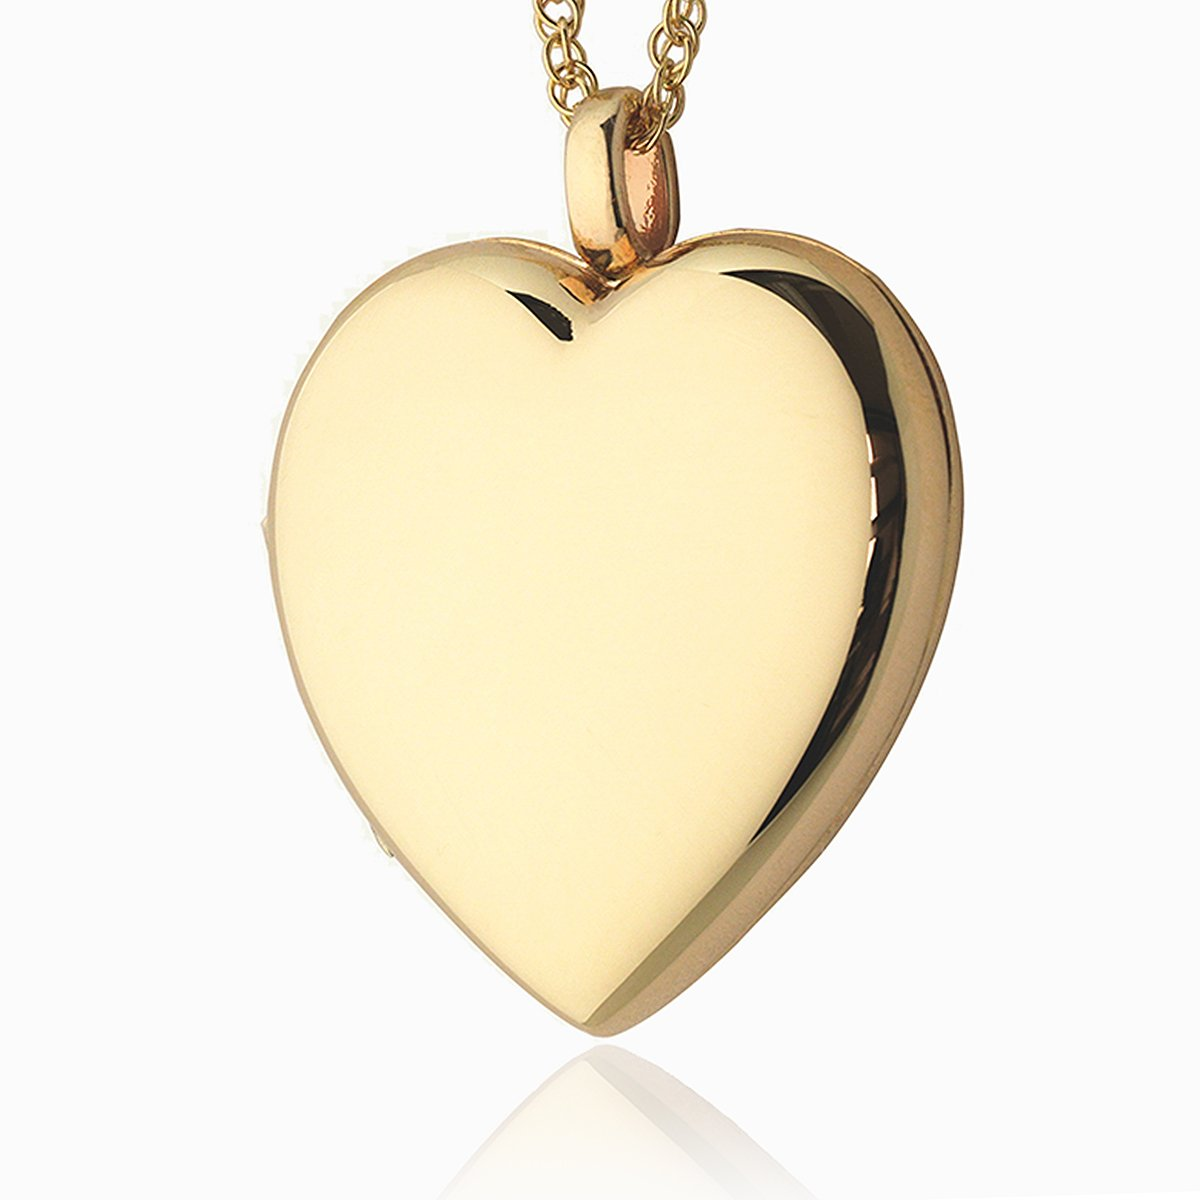 Product title: Handmade Large Gold Family Locket, product type: Locket